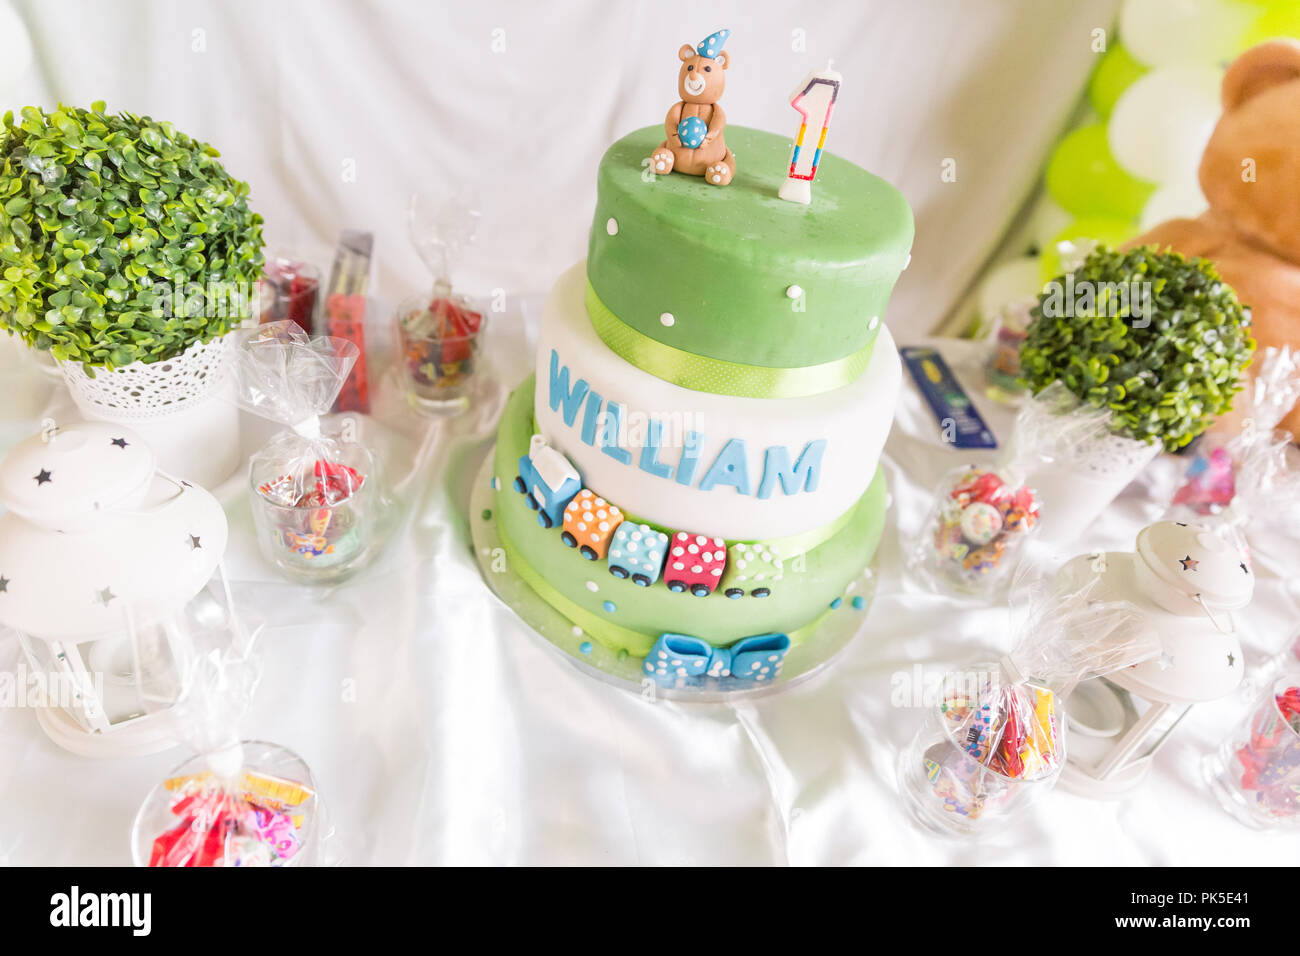 Green And White Birthday Cake With One Year Old Candle Teddy Bear On Table